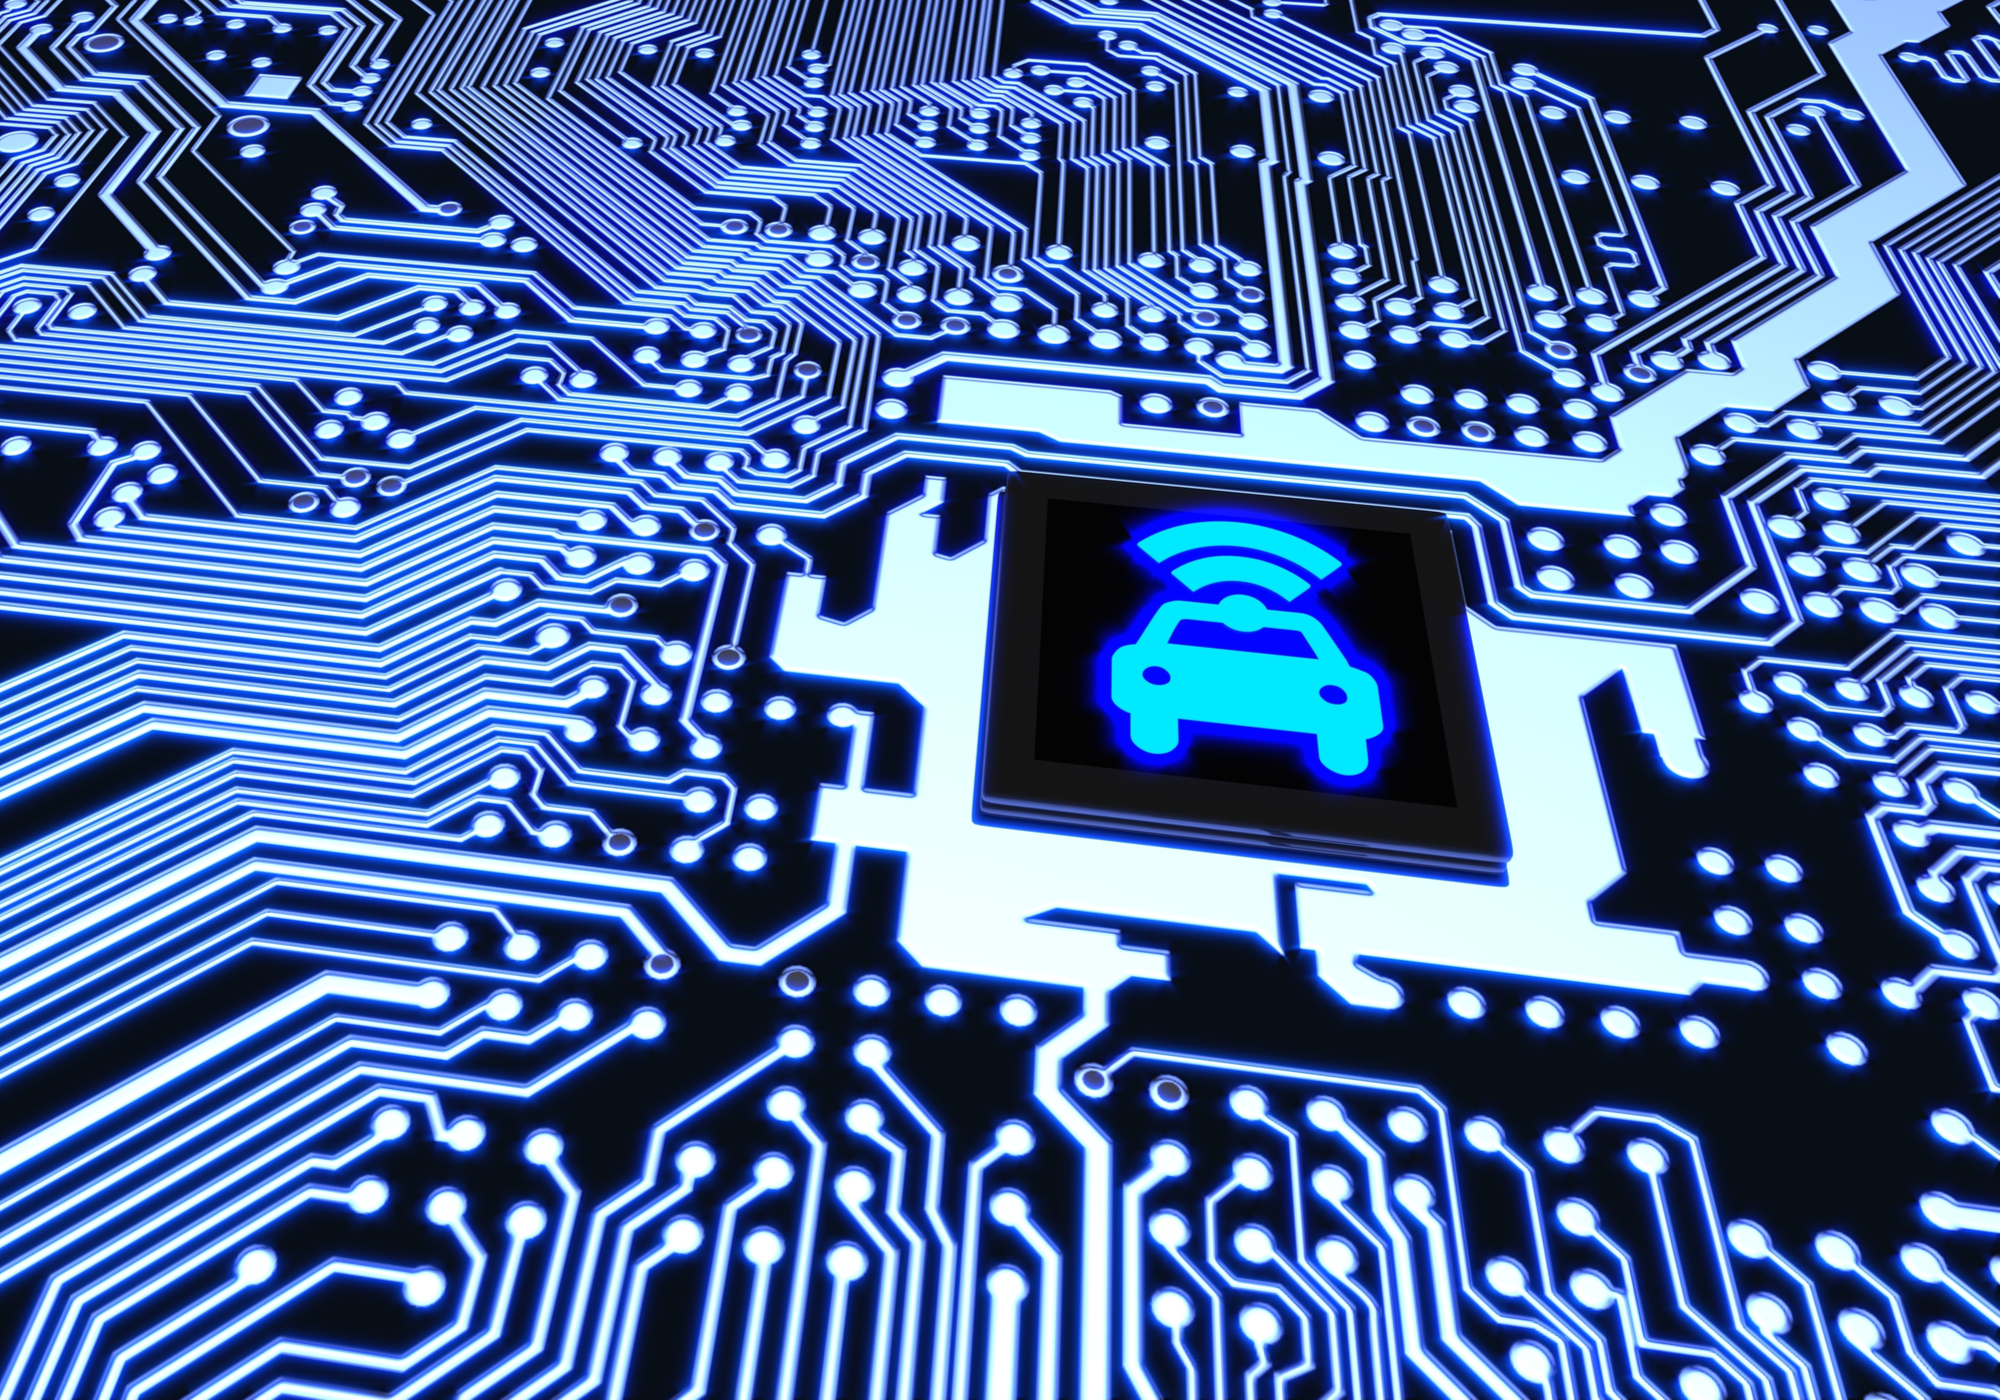 Autonomous cars: The cybersecurity issues facing the industry